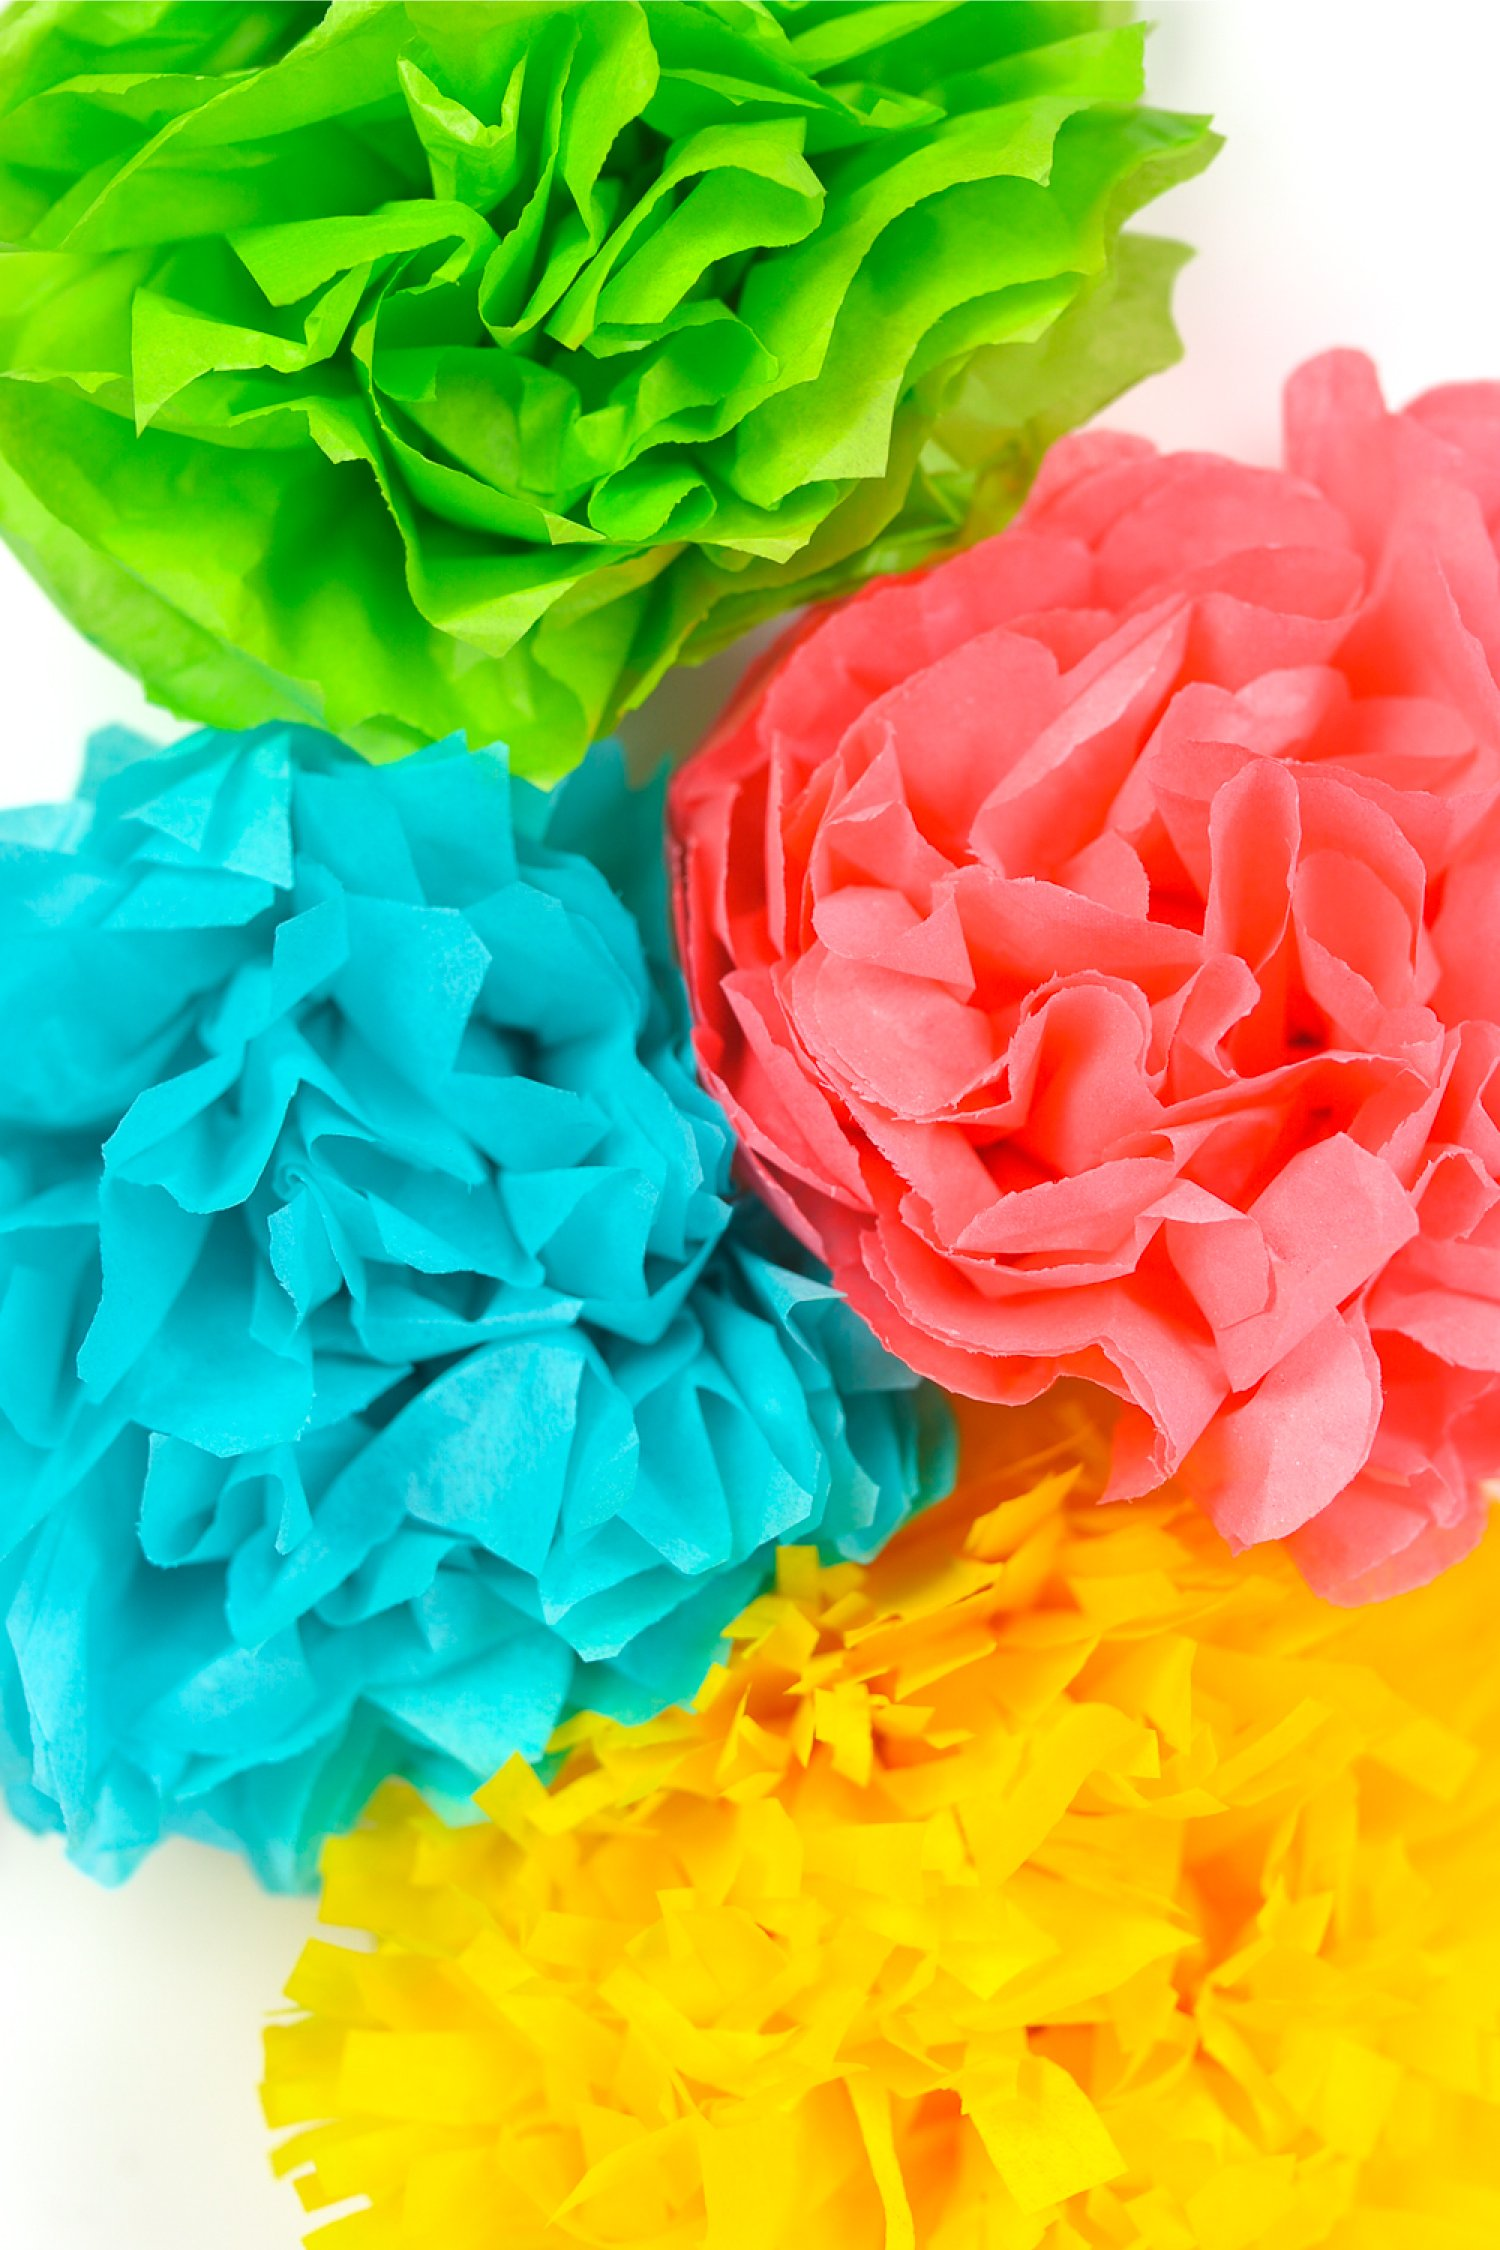 How to Make Easy Paper Flower | Making Paper Flowers Step by Step ... | 2250x1500